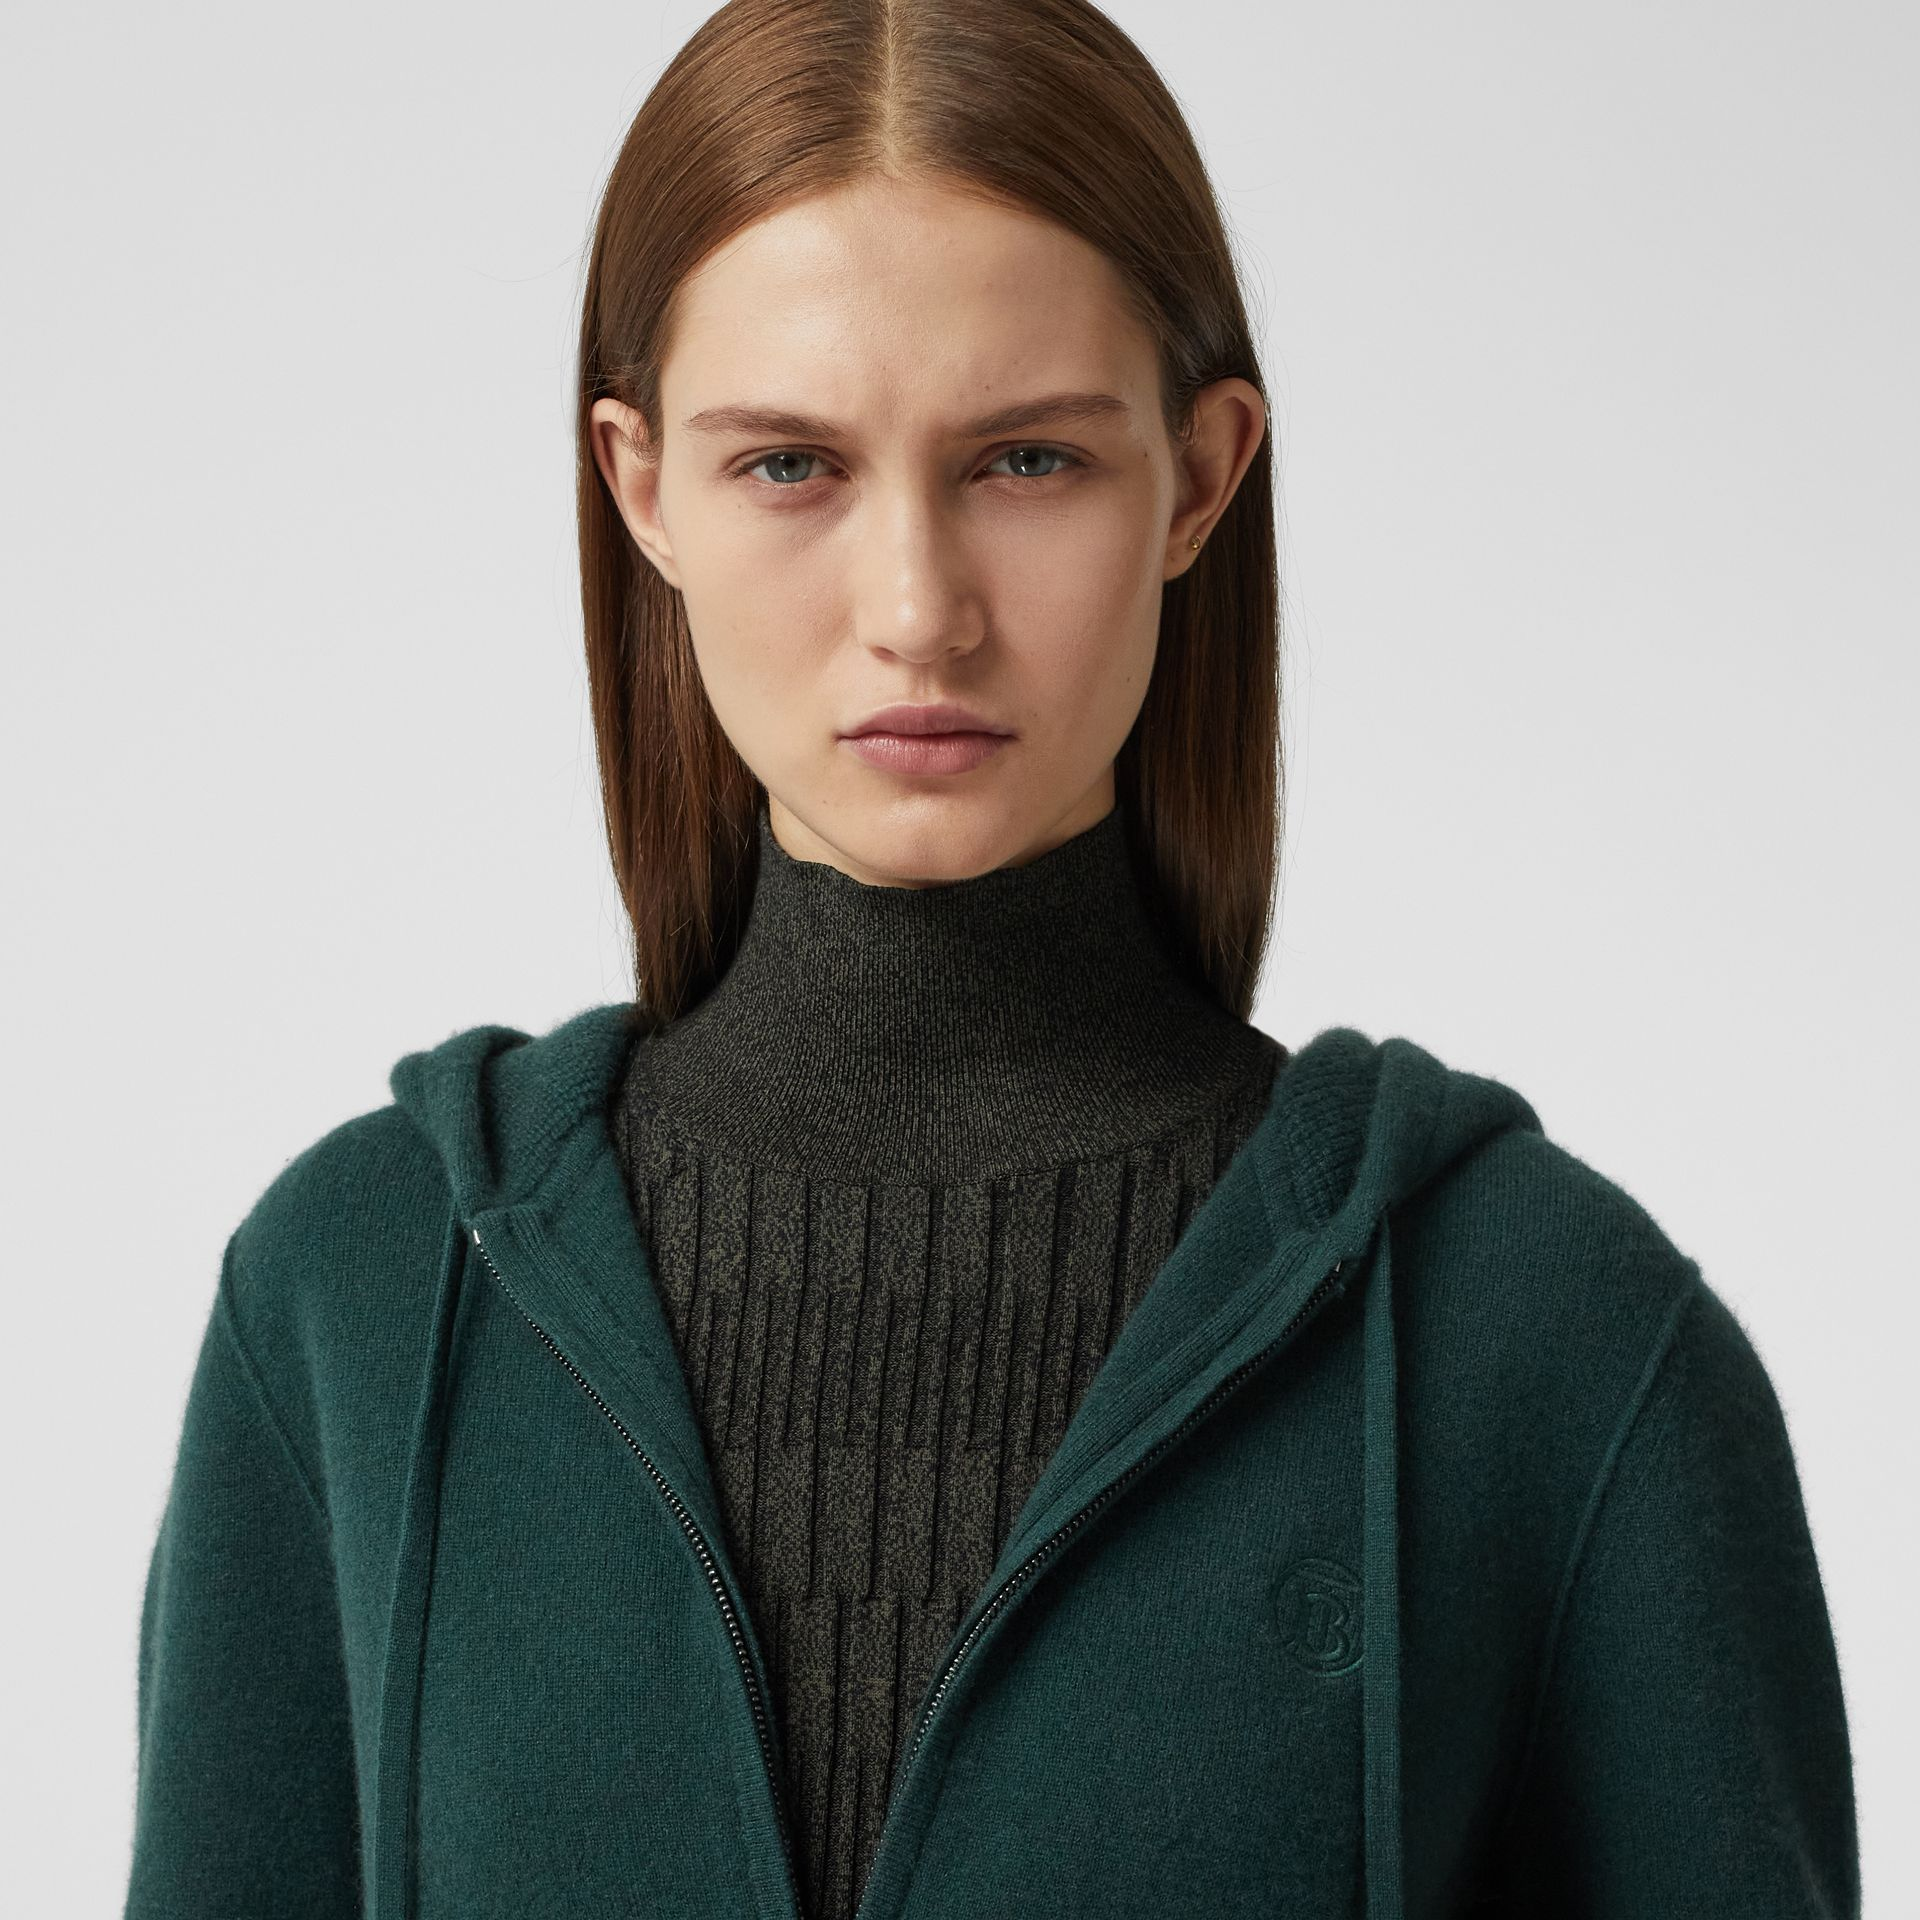 Monogram Motif Cashmere Blend Hooded Top in Bottle Green - Women | Burberry - gallery image 1